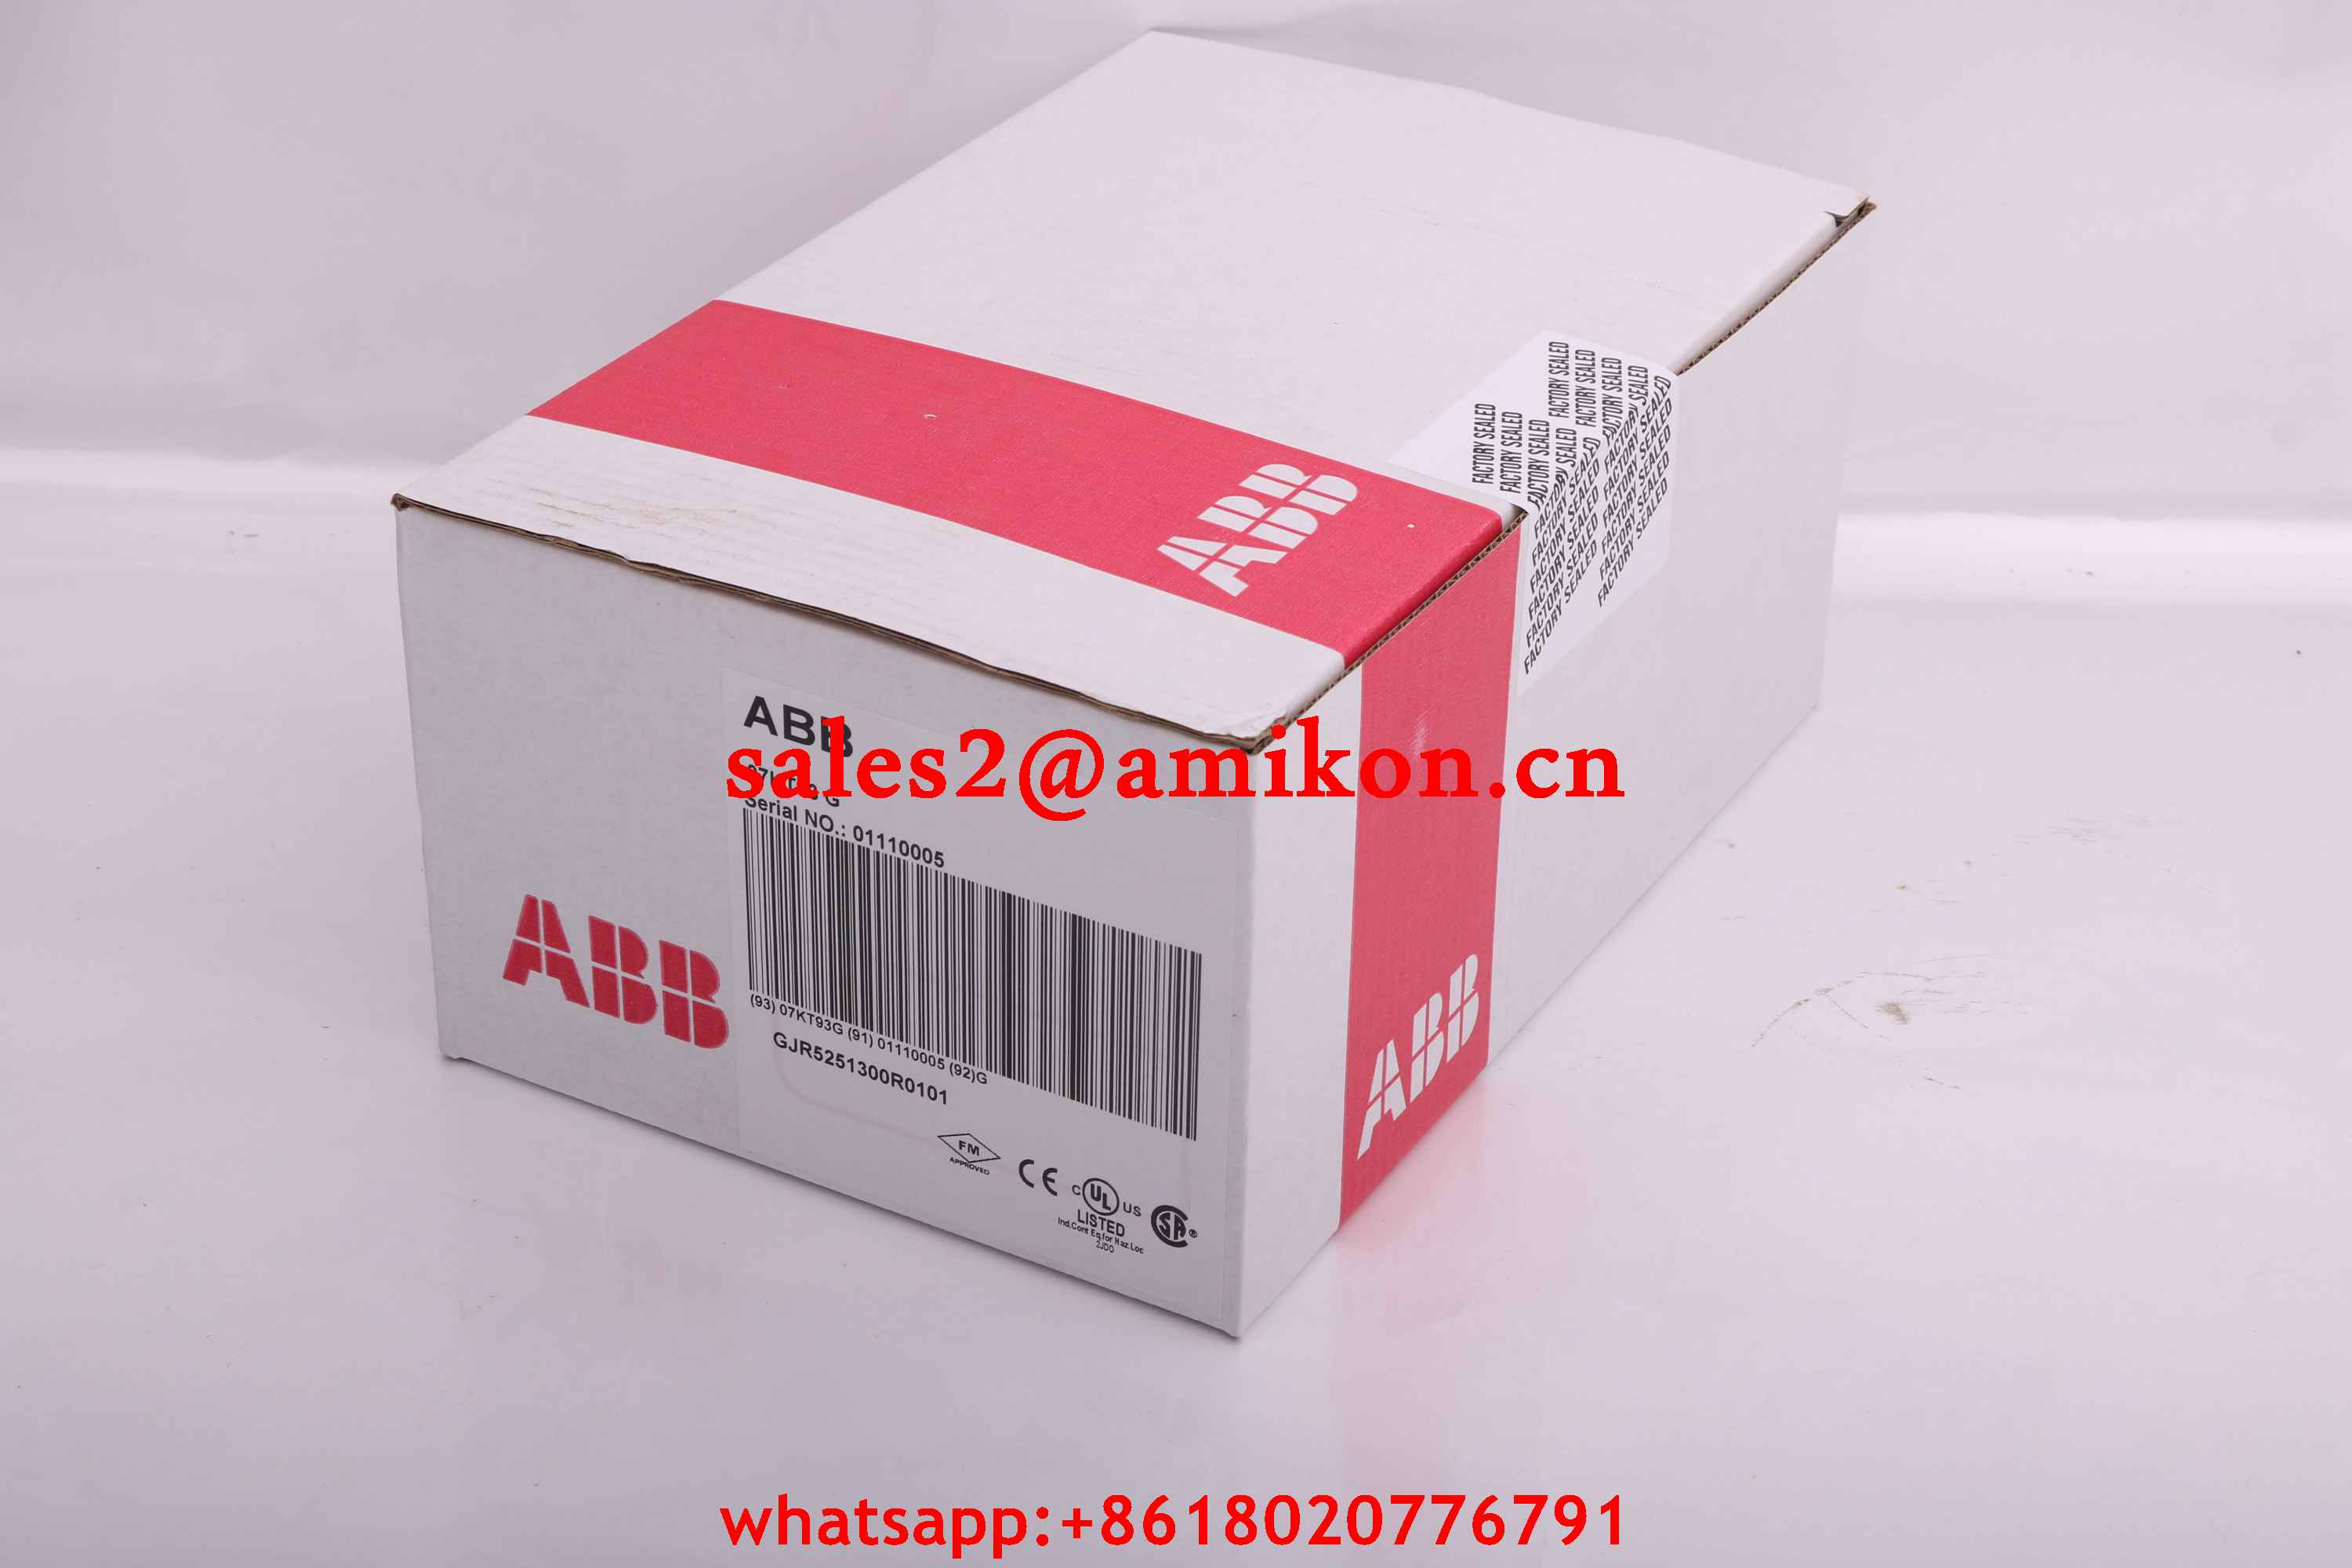 3HAB 5956-1 DSQC323 8MB Card ABB | Robot spare parts | PLC DCS Parts T/T 100% New In stock